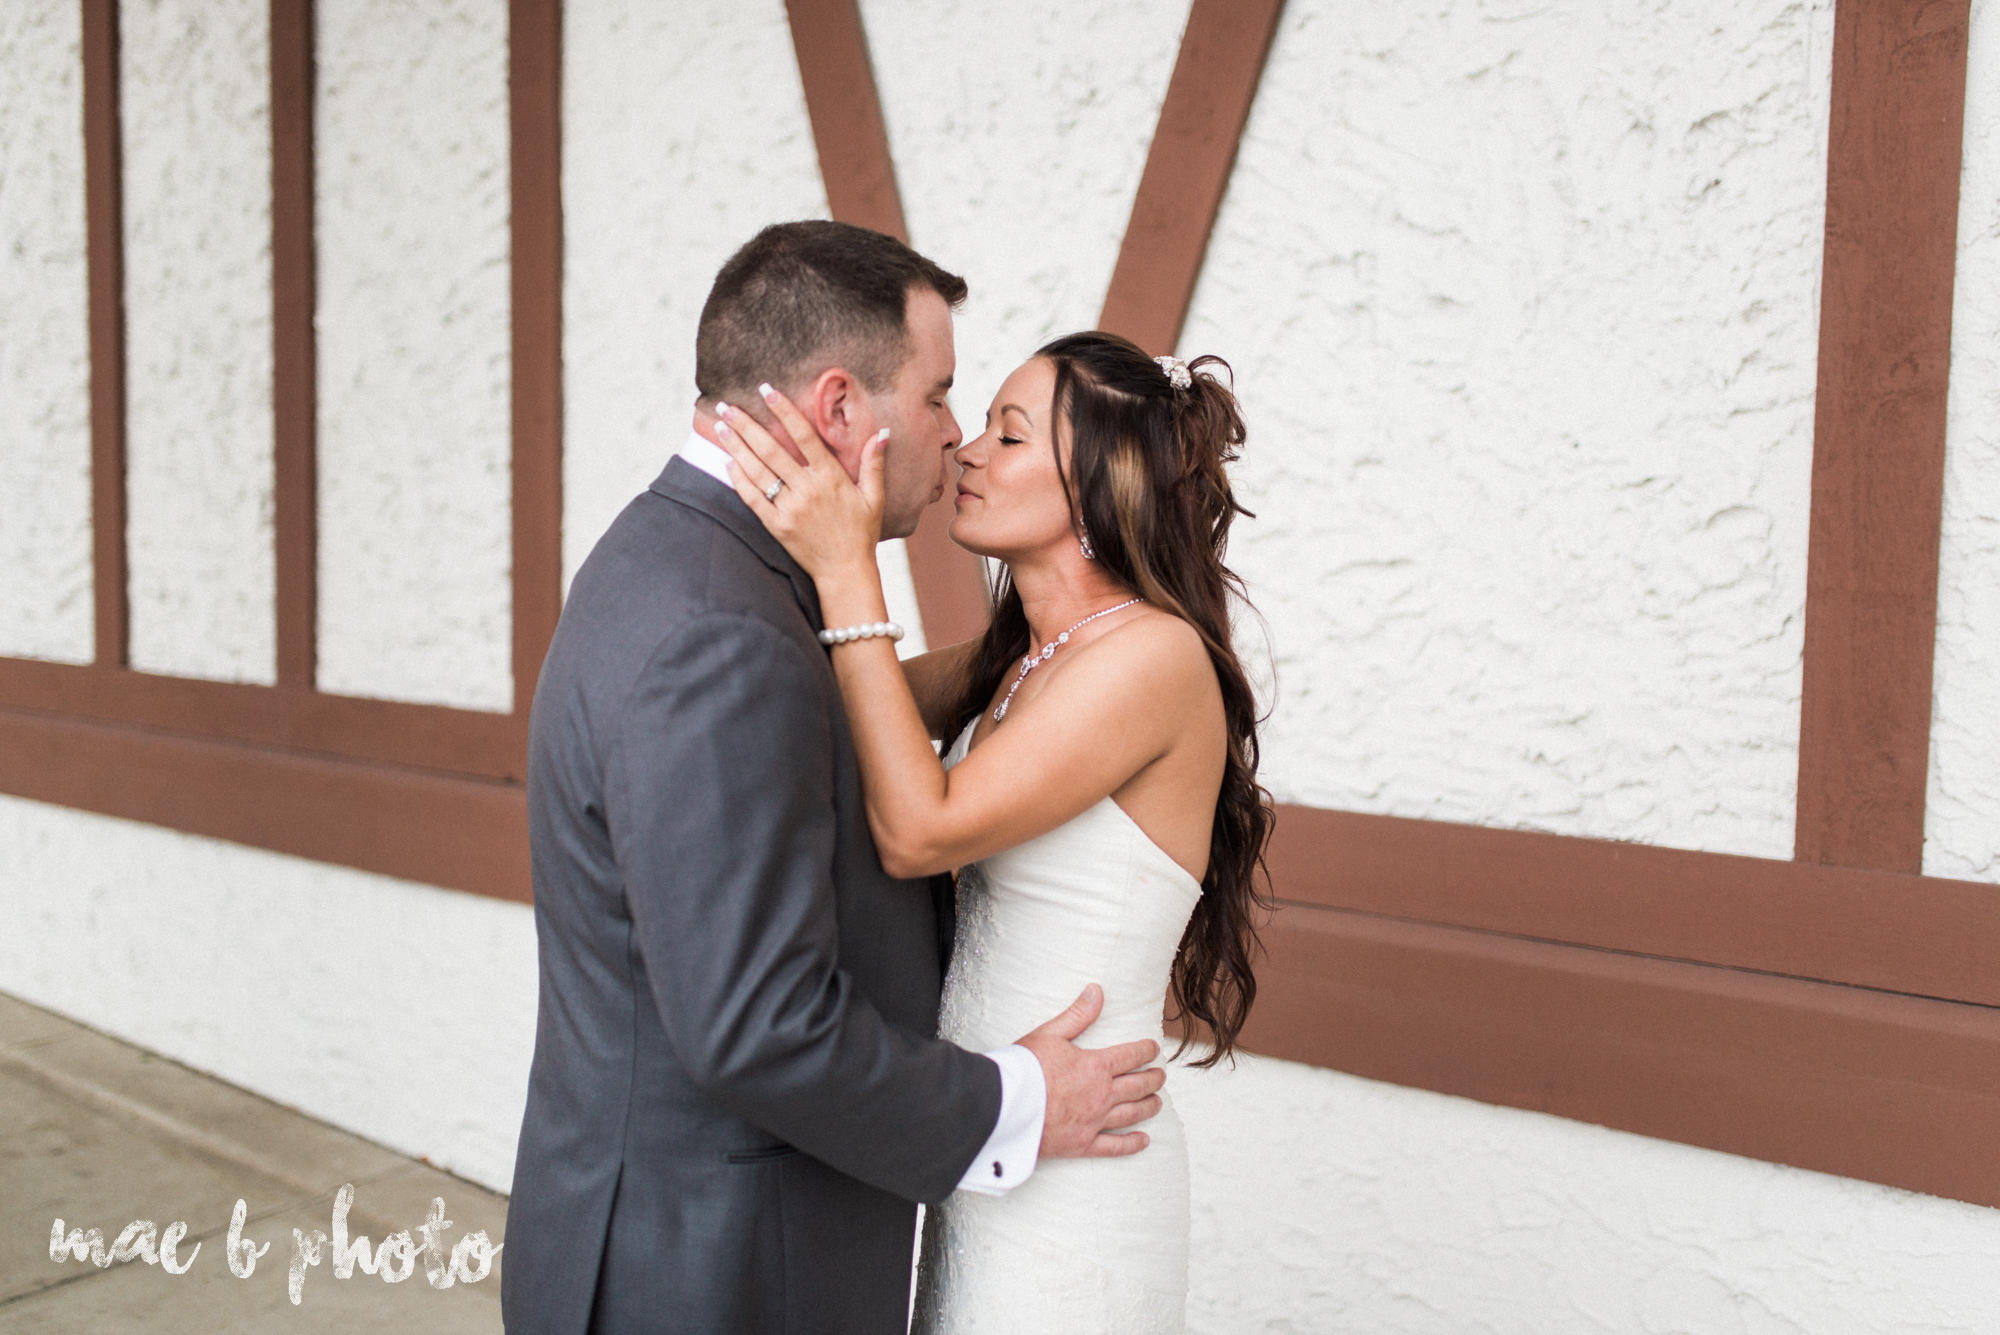 kristy and matt's summer wedding at the embassy in youngstown ohio photographed by youngstown wedding photographer mae b photo-15.jpg